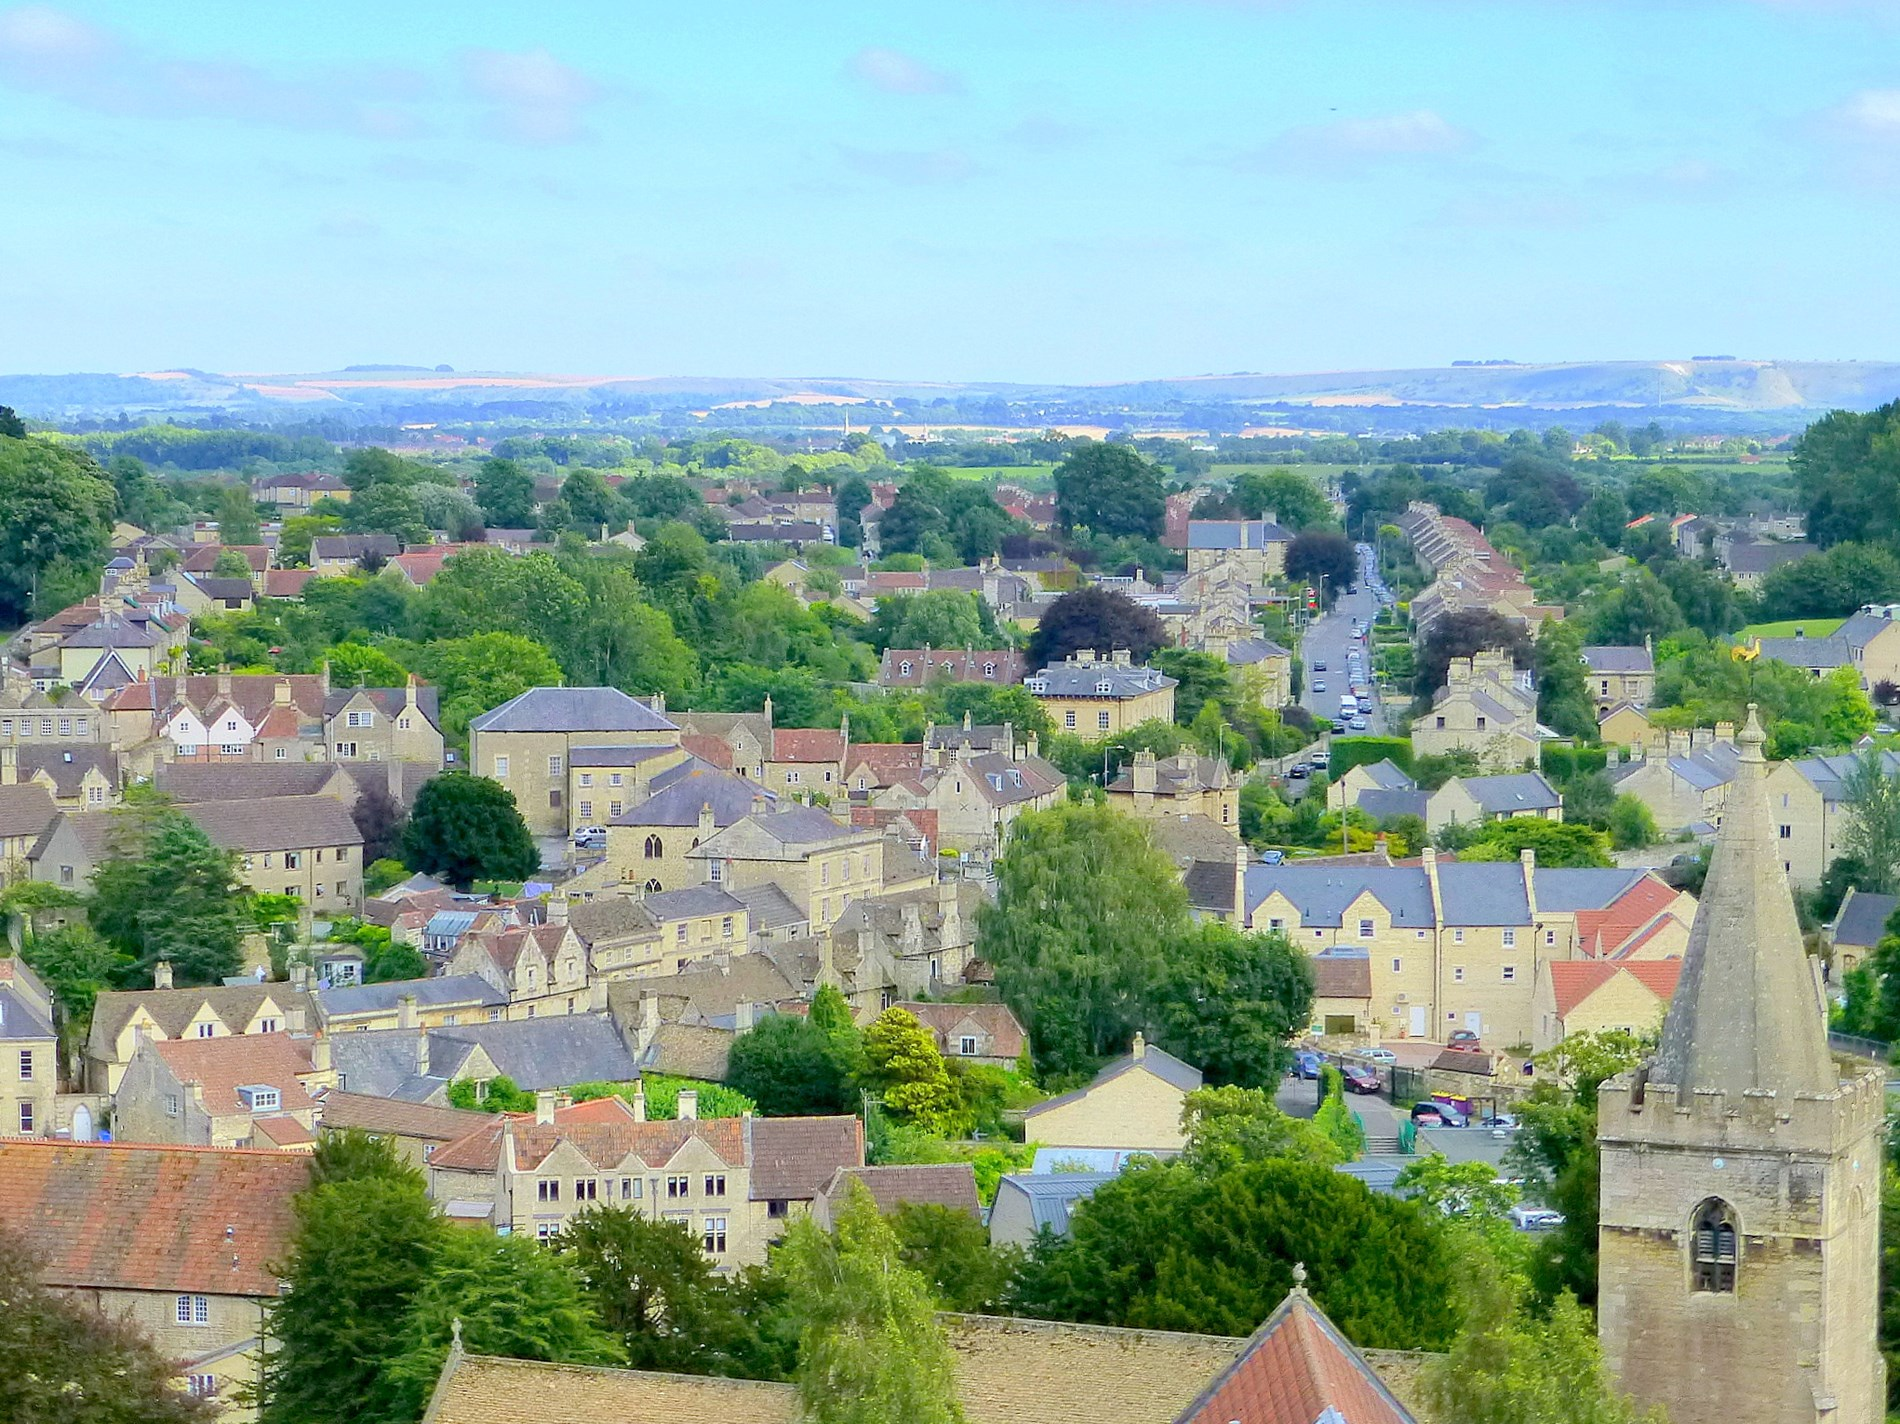 unobstructed views over Bradford on Avon